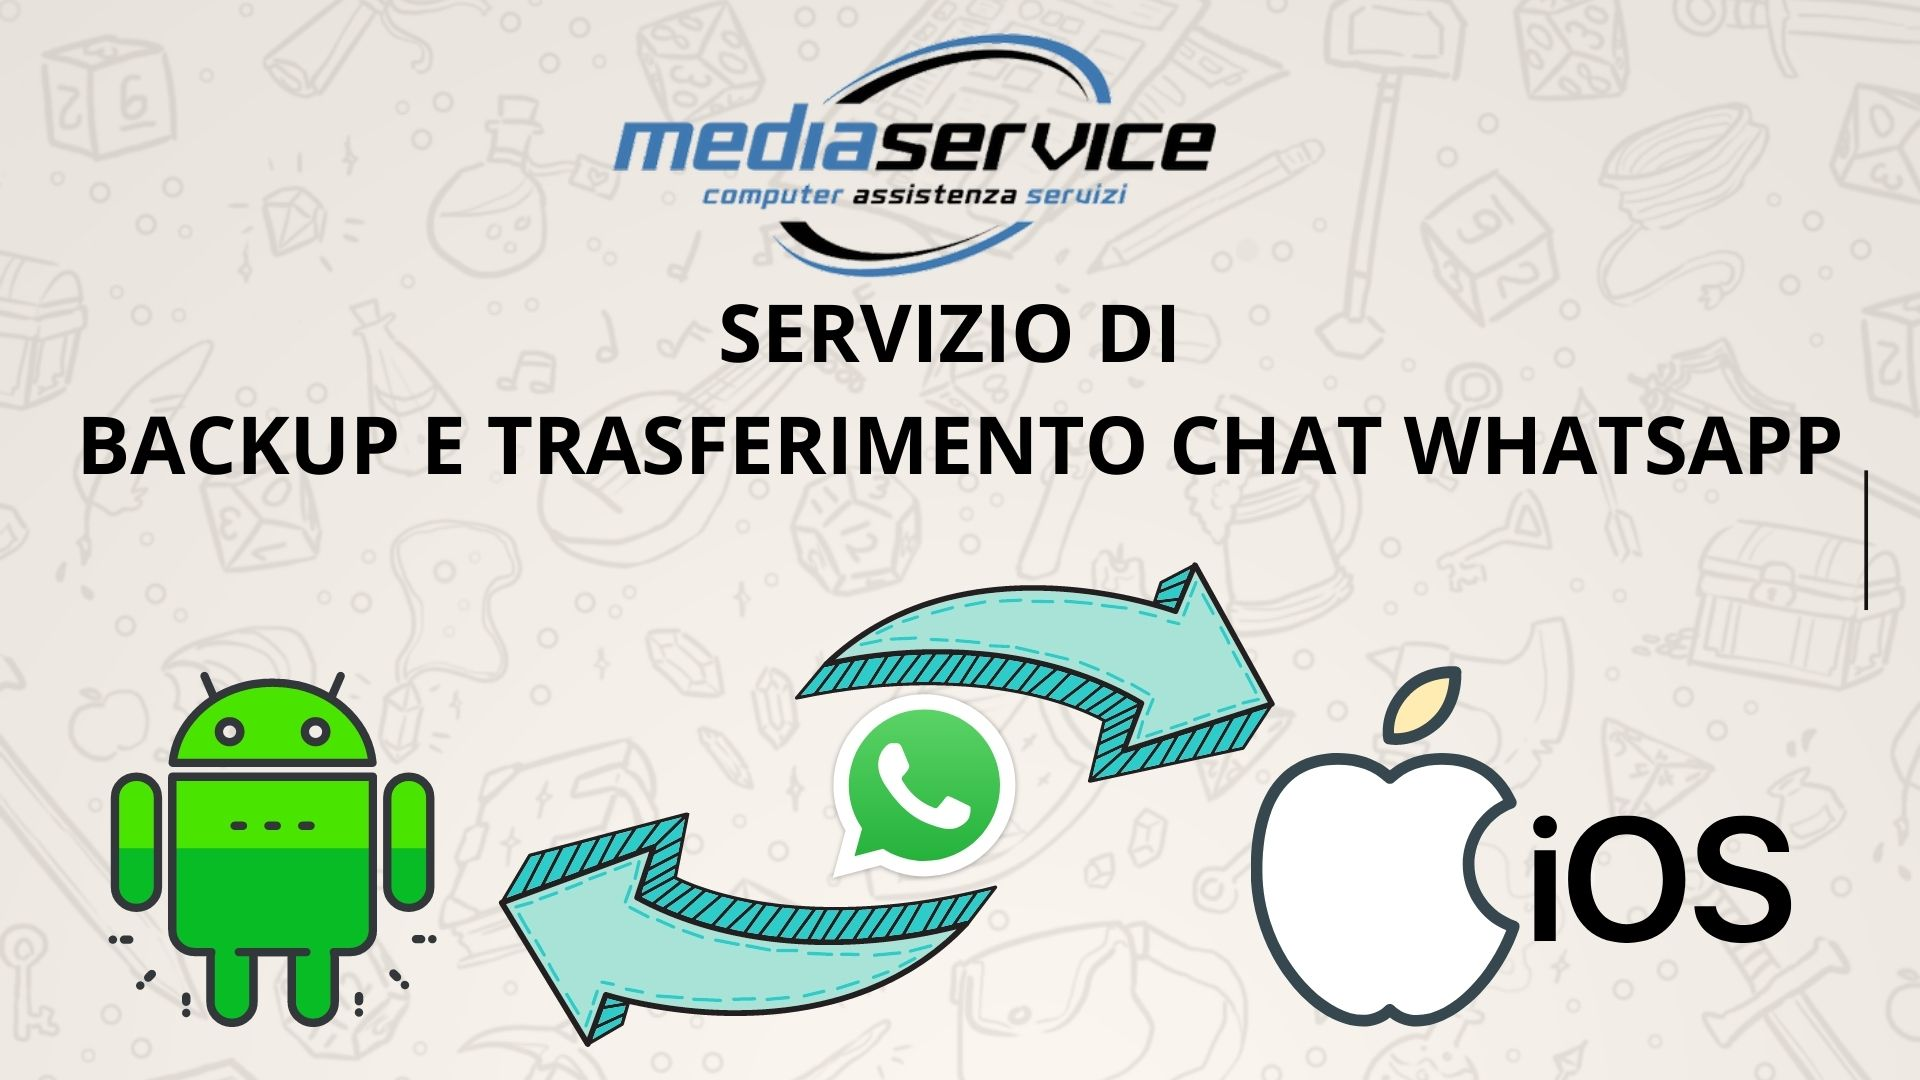 Servizio di trasferimento chat Whatsapp da Android ad Apple